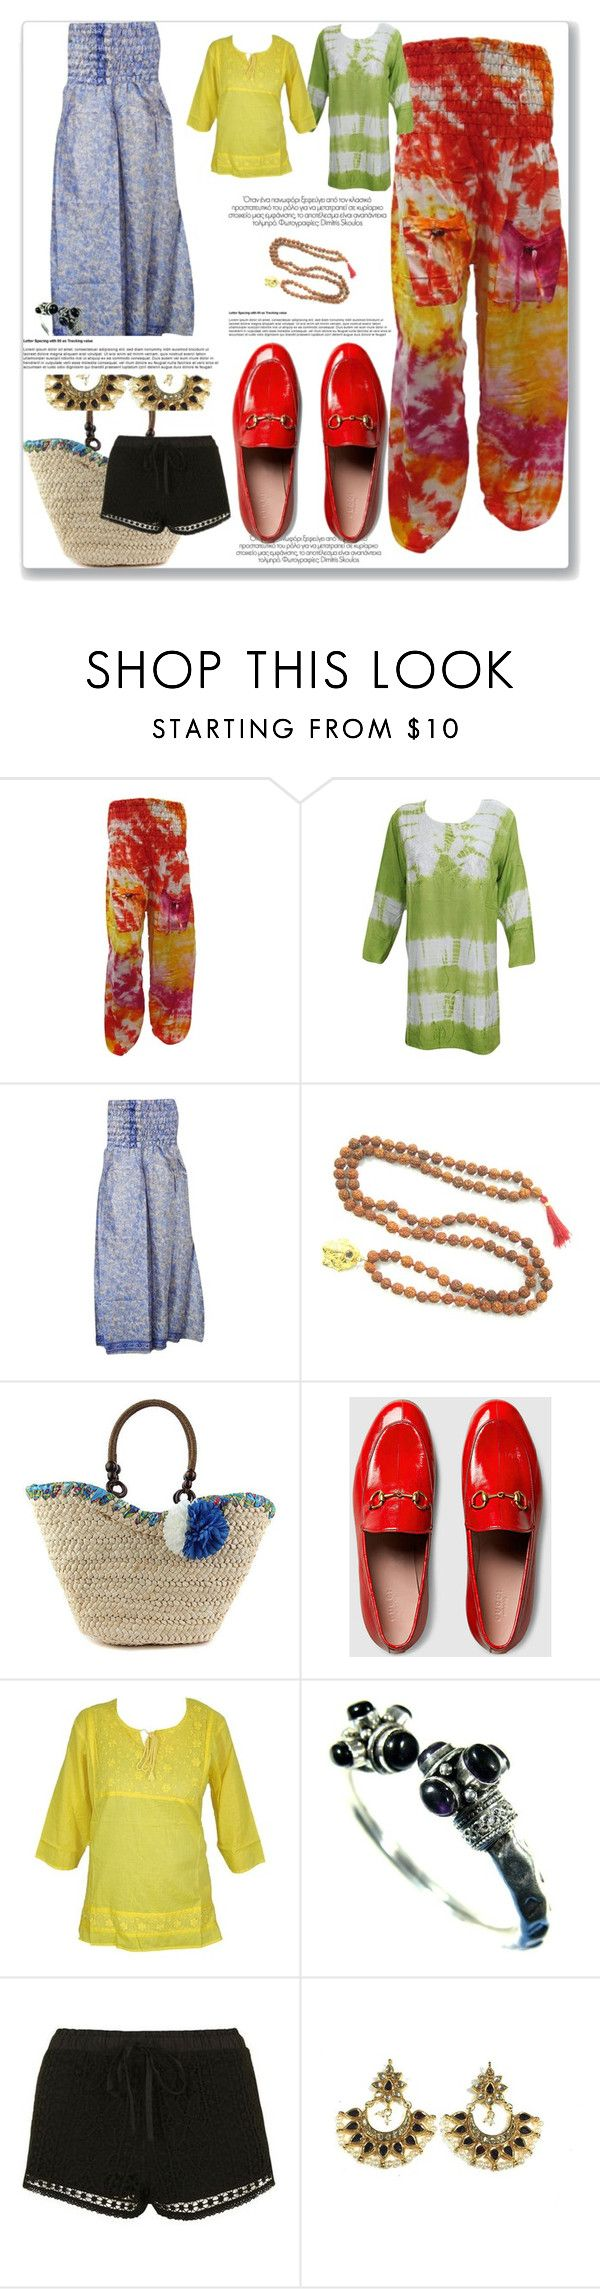 """Collection College Chic"" by era-chandok ❤ liked on Polyvore featuring Gucci, Topshop, dress, sale, offer, collegegirls and boostyle"